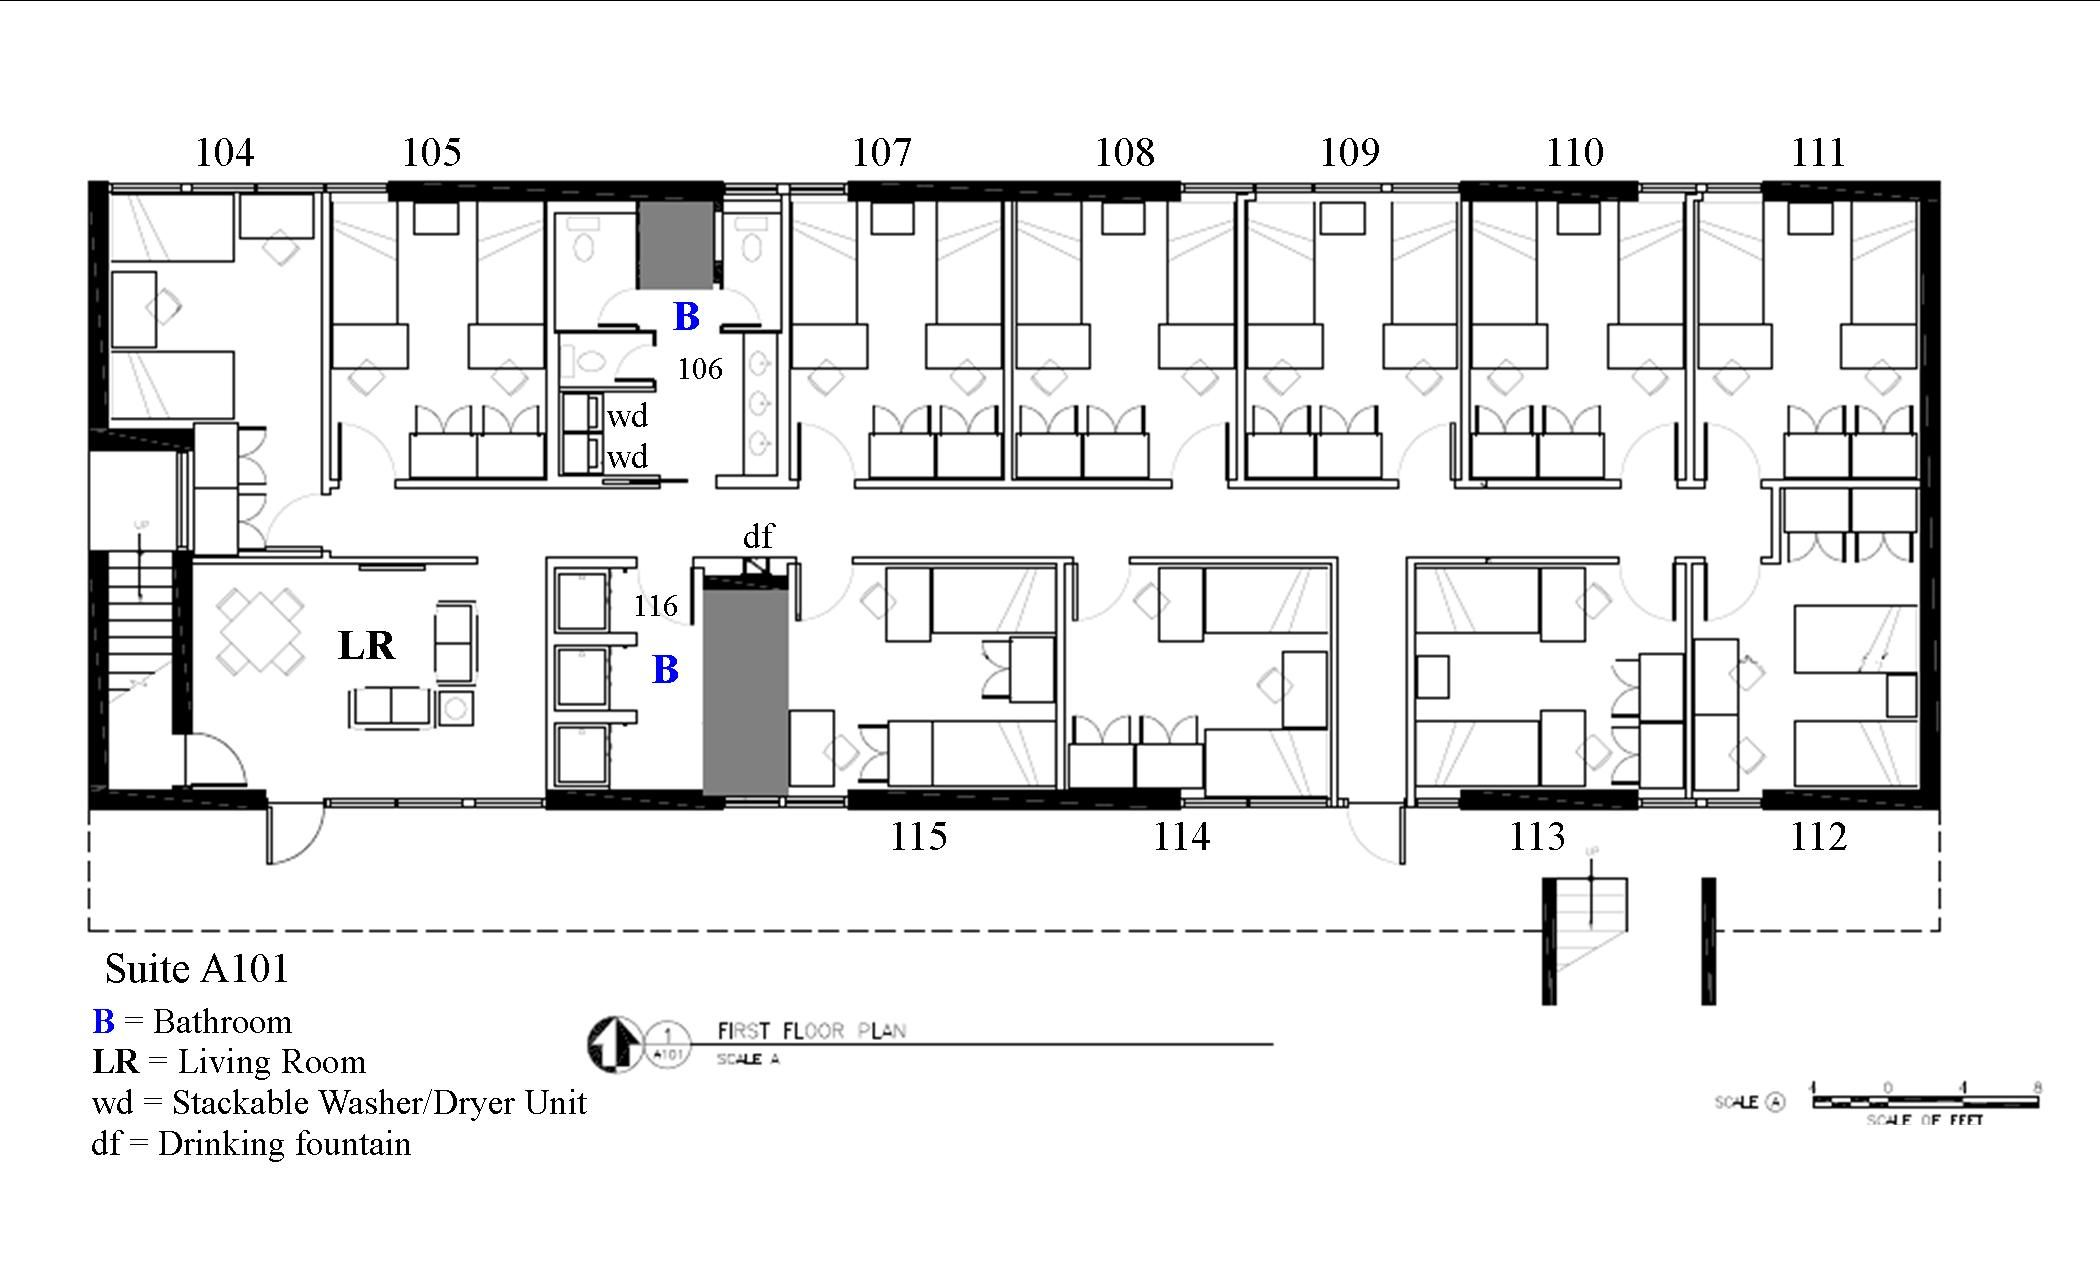 Bungalow Haus Online Planen Create Floor Plans Online For Free With Restaurant Floor